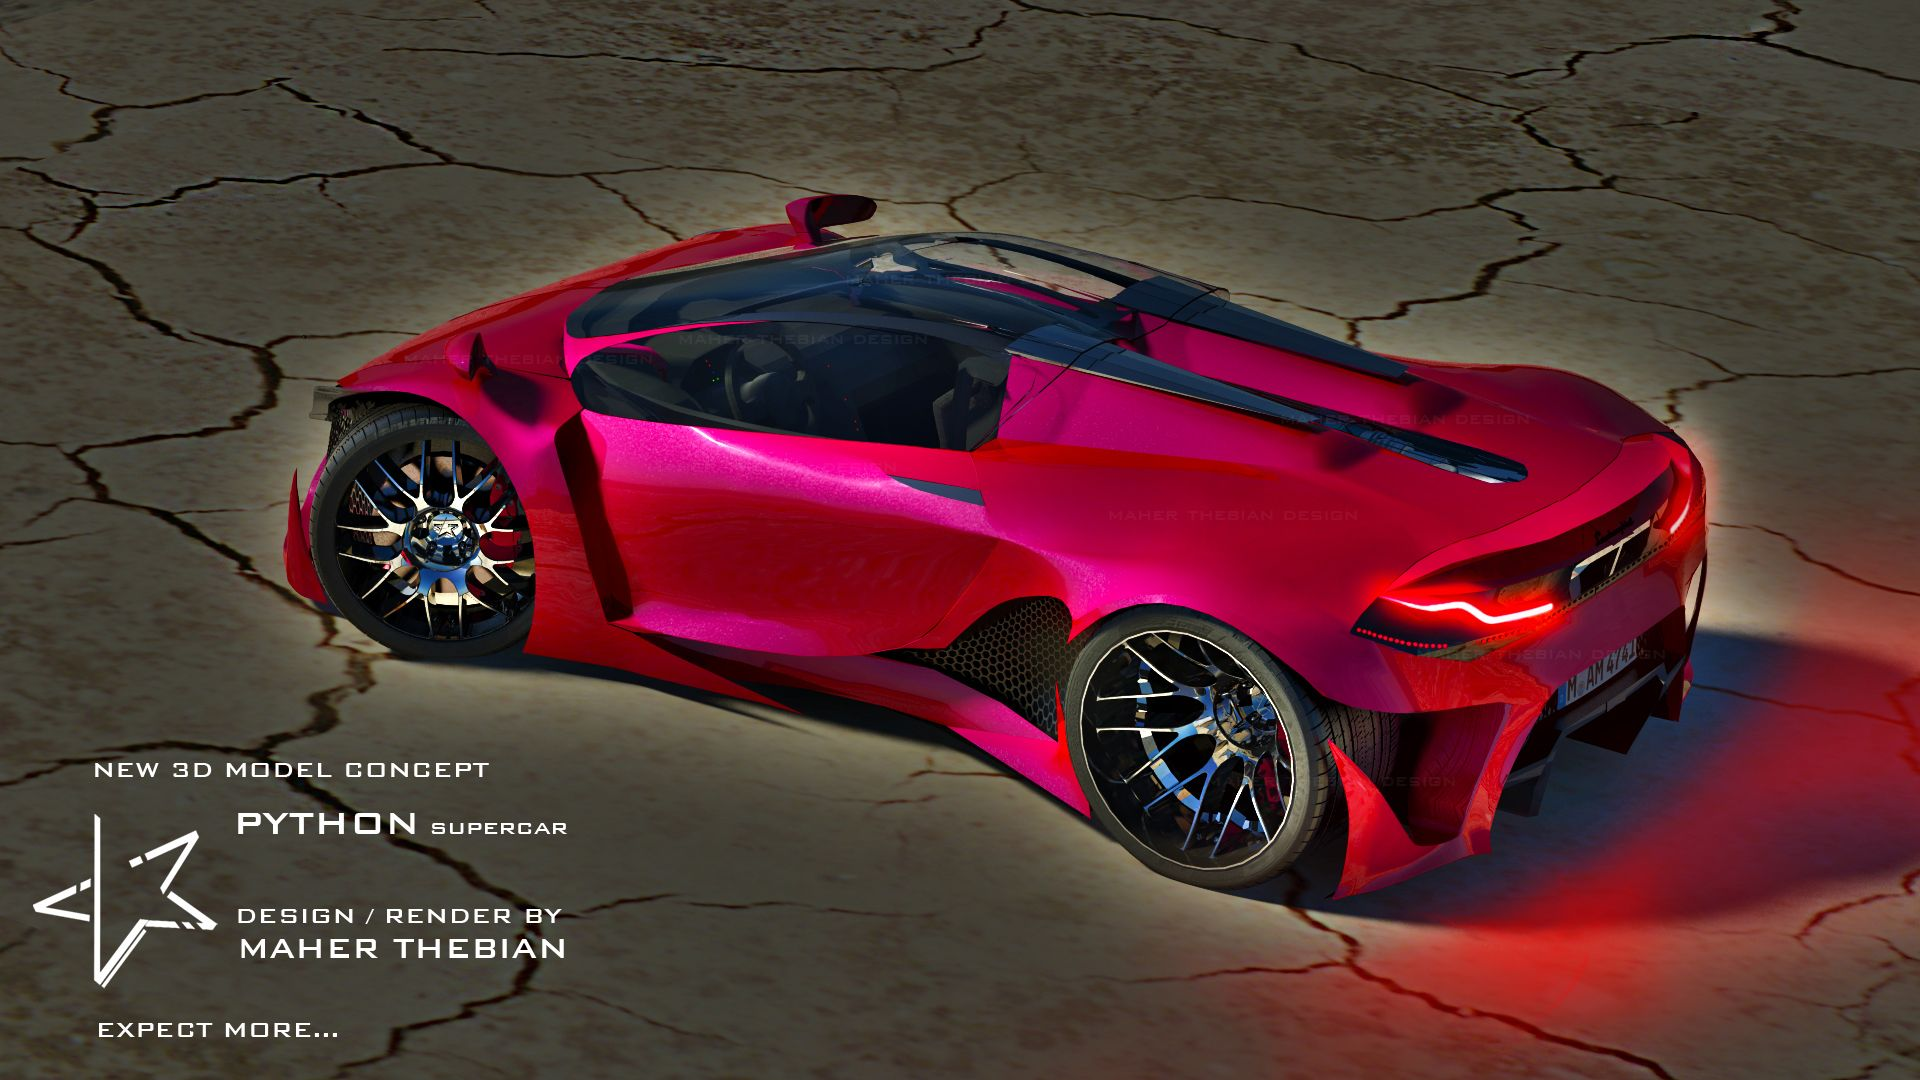 This Is My New 3d Model Concept Super Car Design With Aggressive Looks Having Carbon Fiber Body And Spikes Mounted On Carbo Lamborghini Concept Super Cars Audi